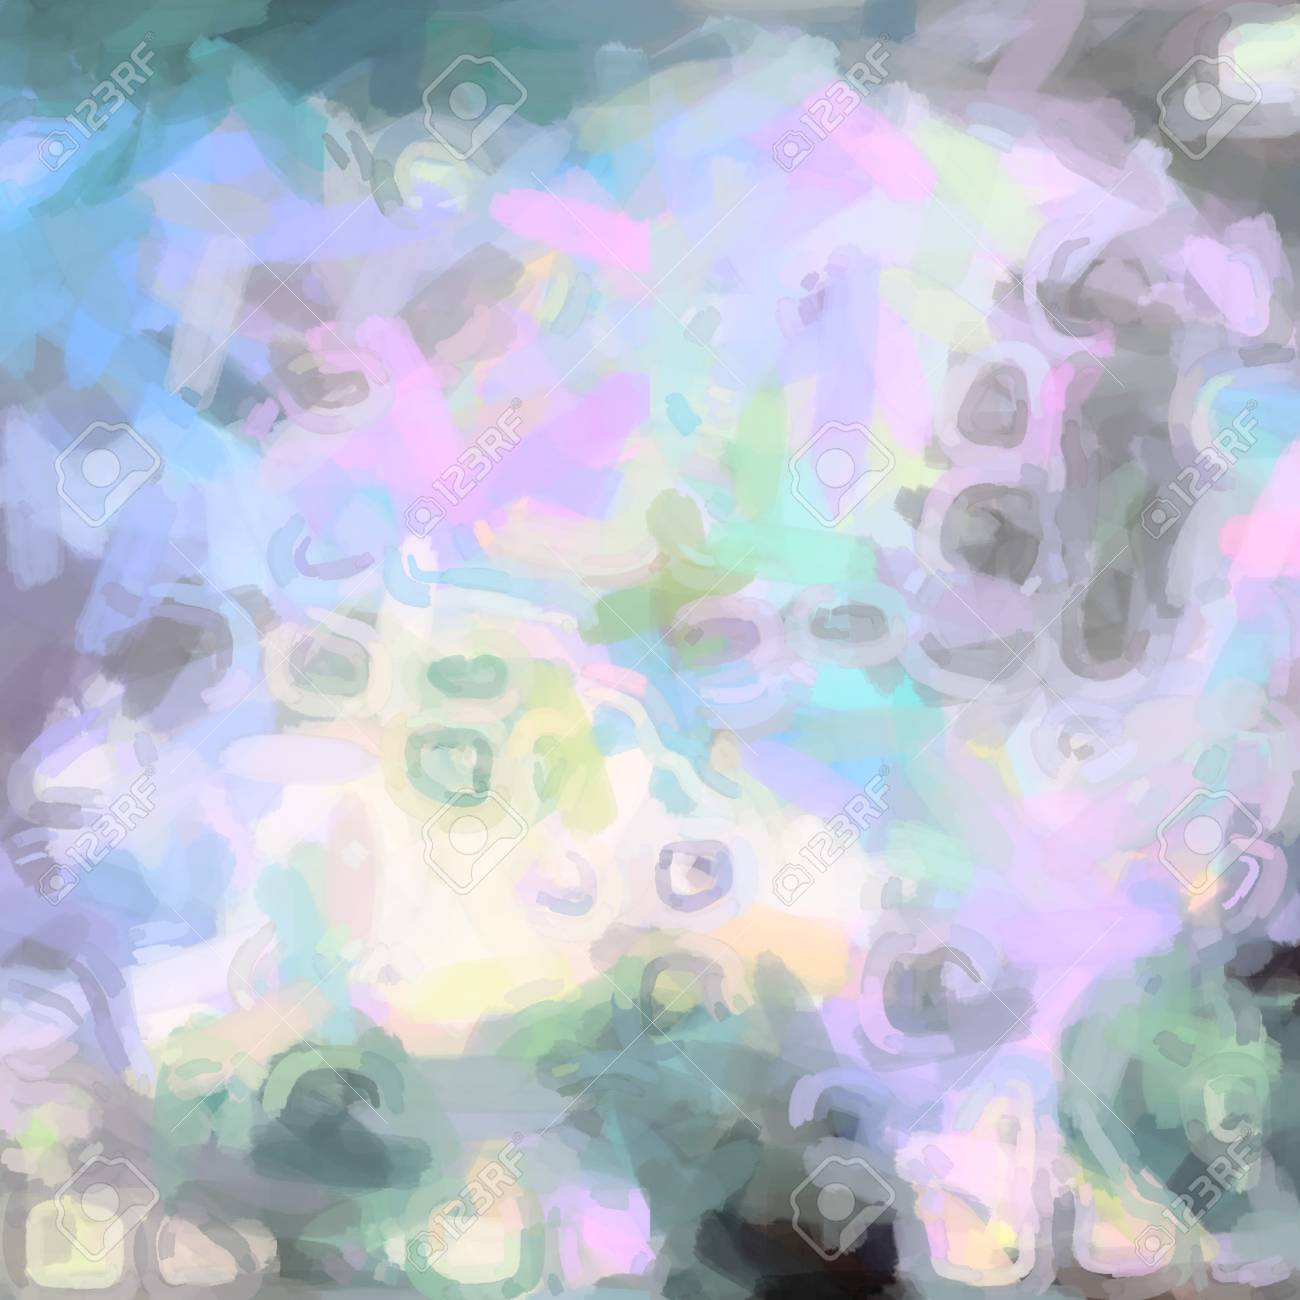 watercolor background in different colors best for creative design Stock Photo - 18908230